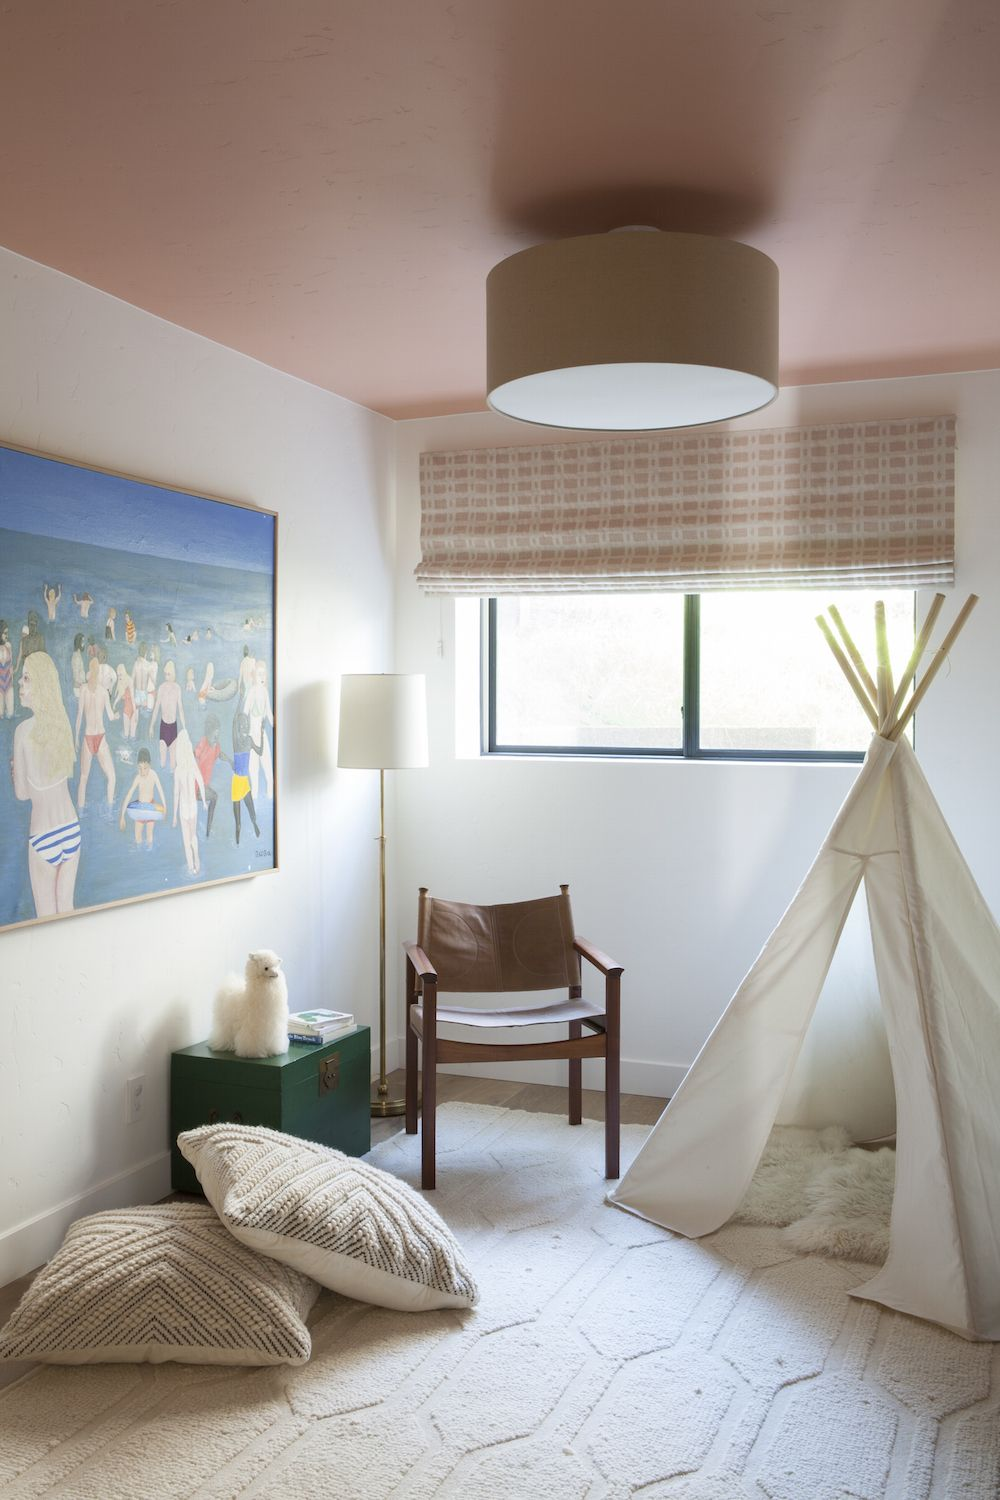 Disc interiors a spanish colonial revival home transformed la edition remodelista kids rooms discinteiors